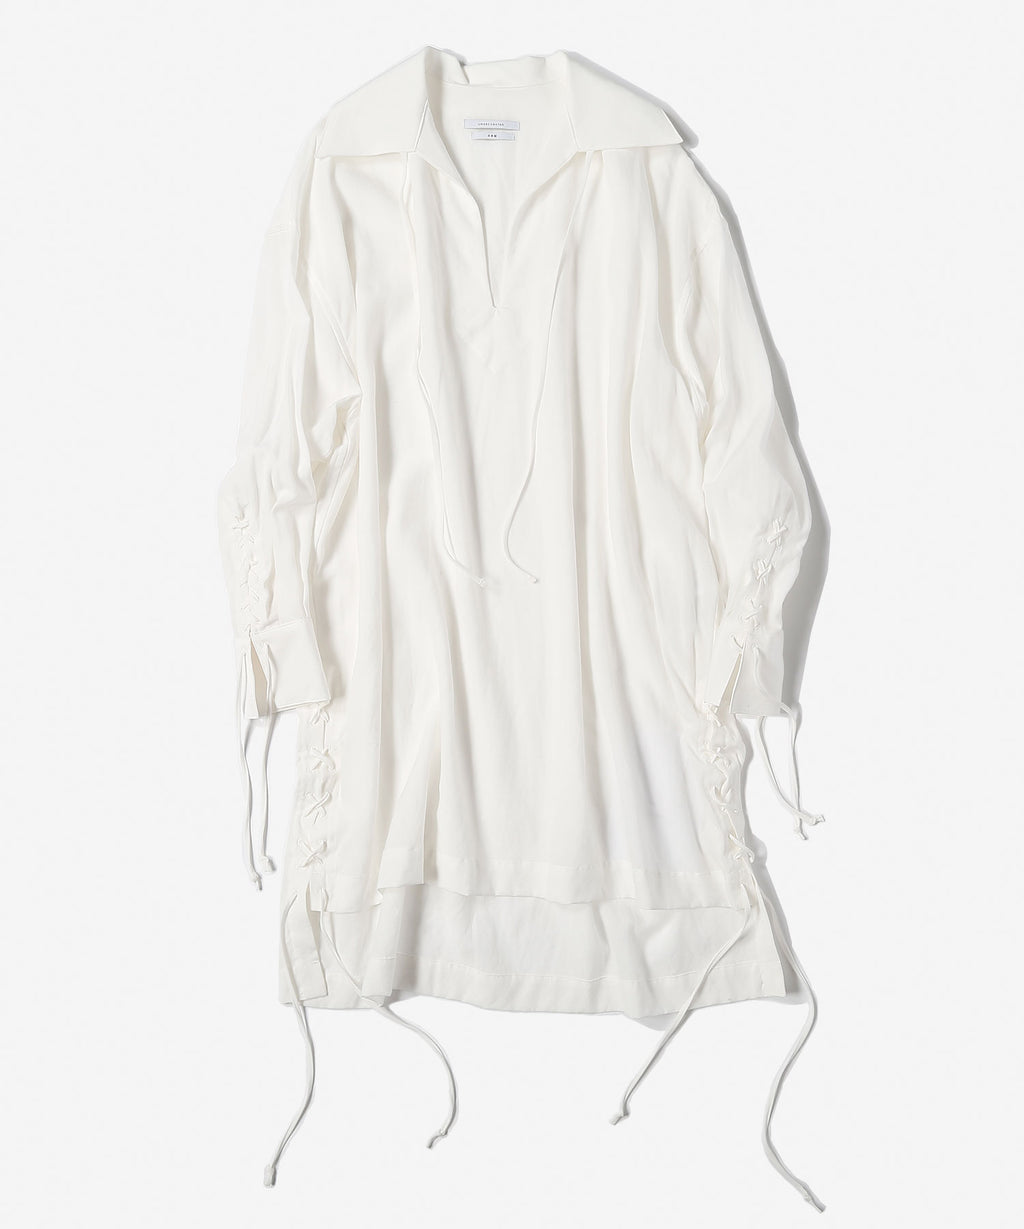 Tropical washedout pull over shrits[Women]